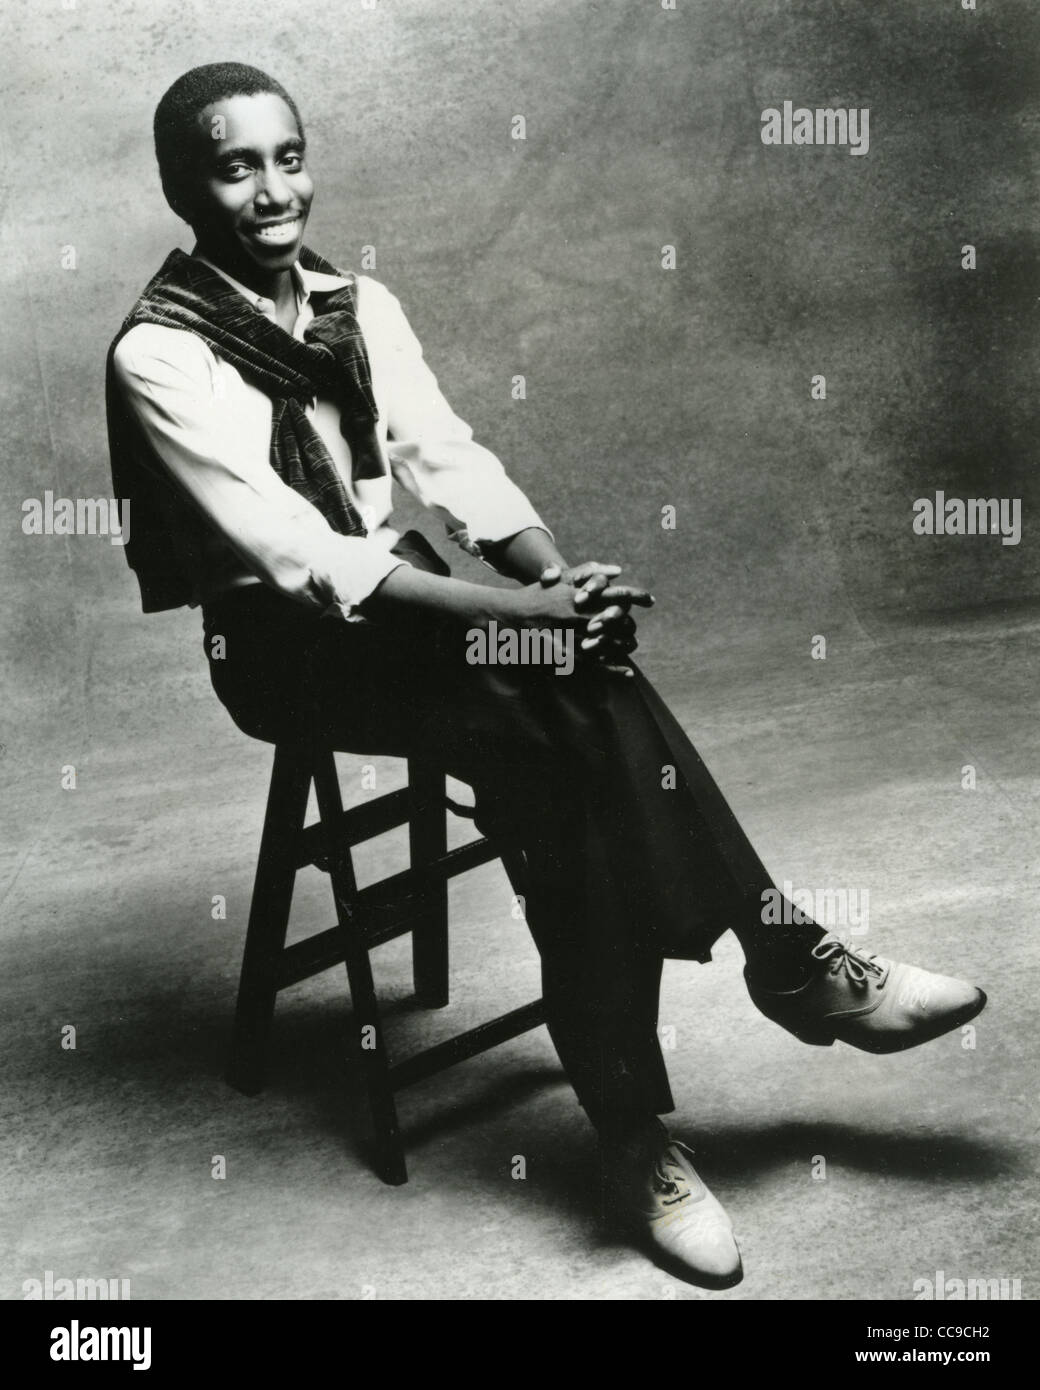 GREG PHILLINGANES Promotional photo of US musician about 1980 - Stock Image